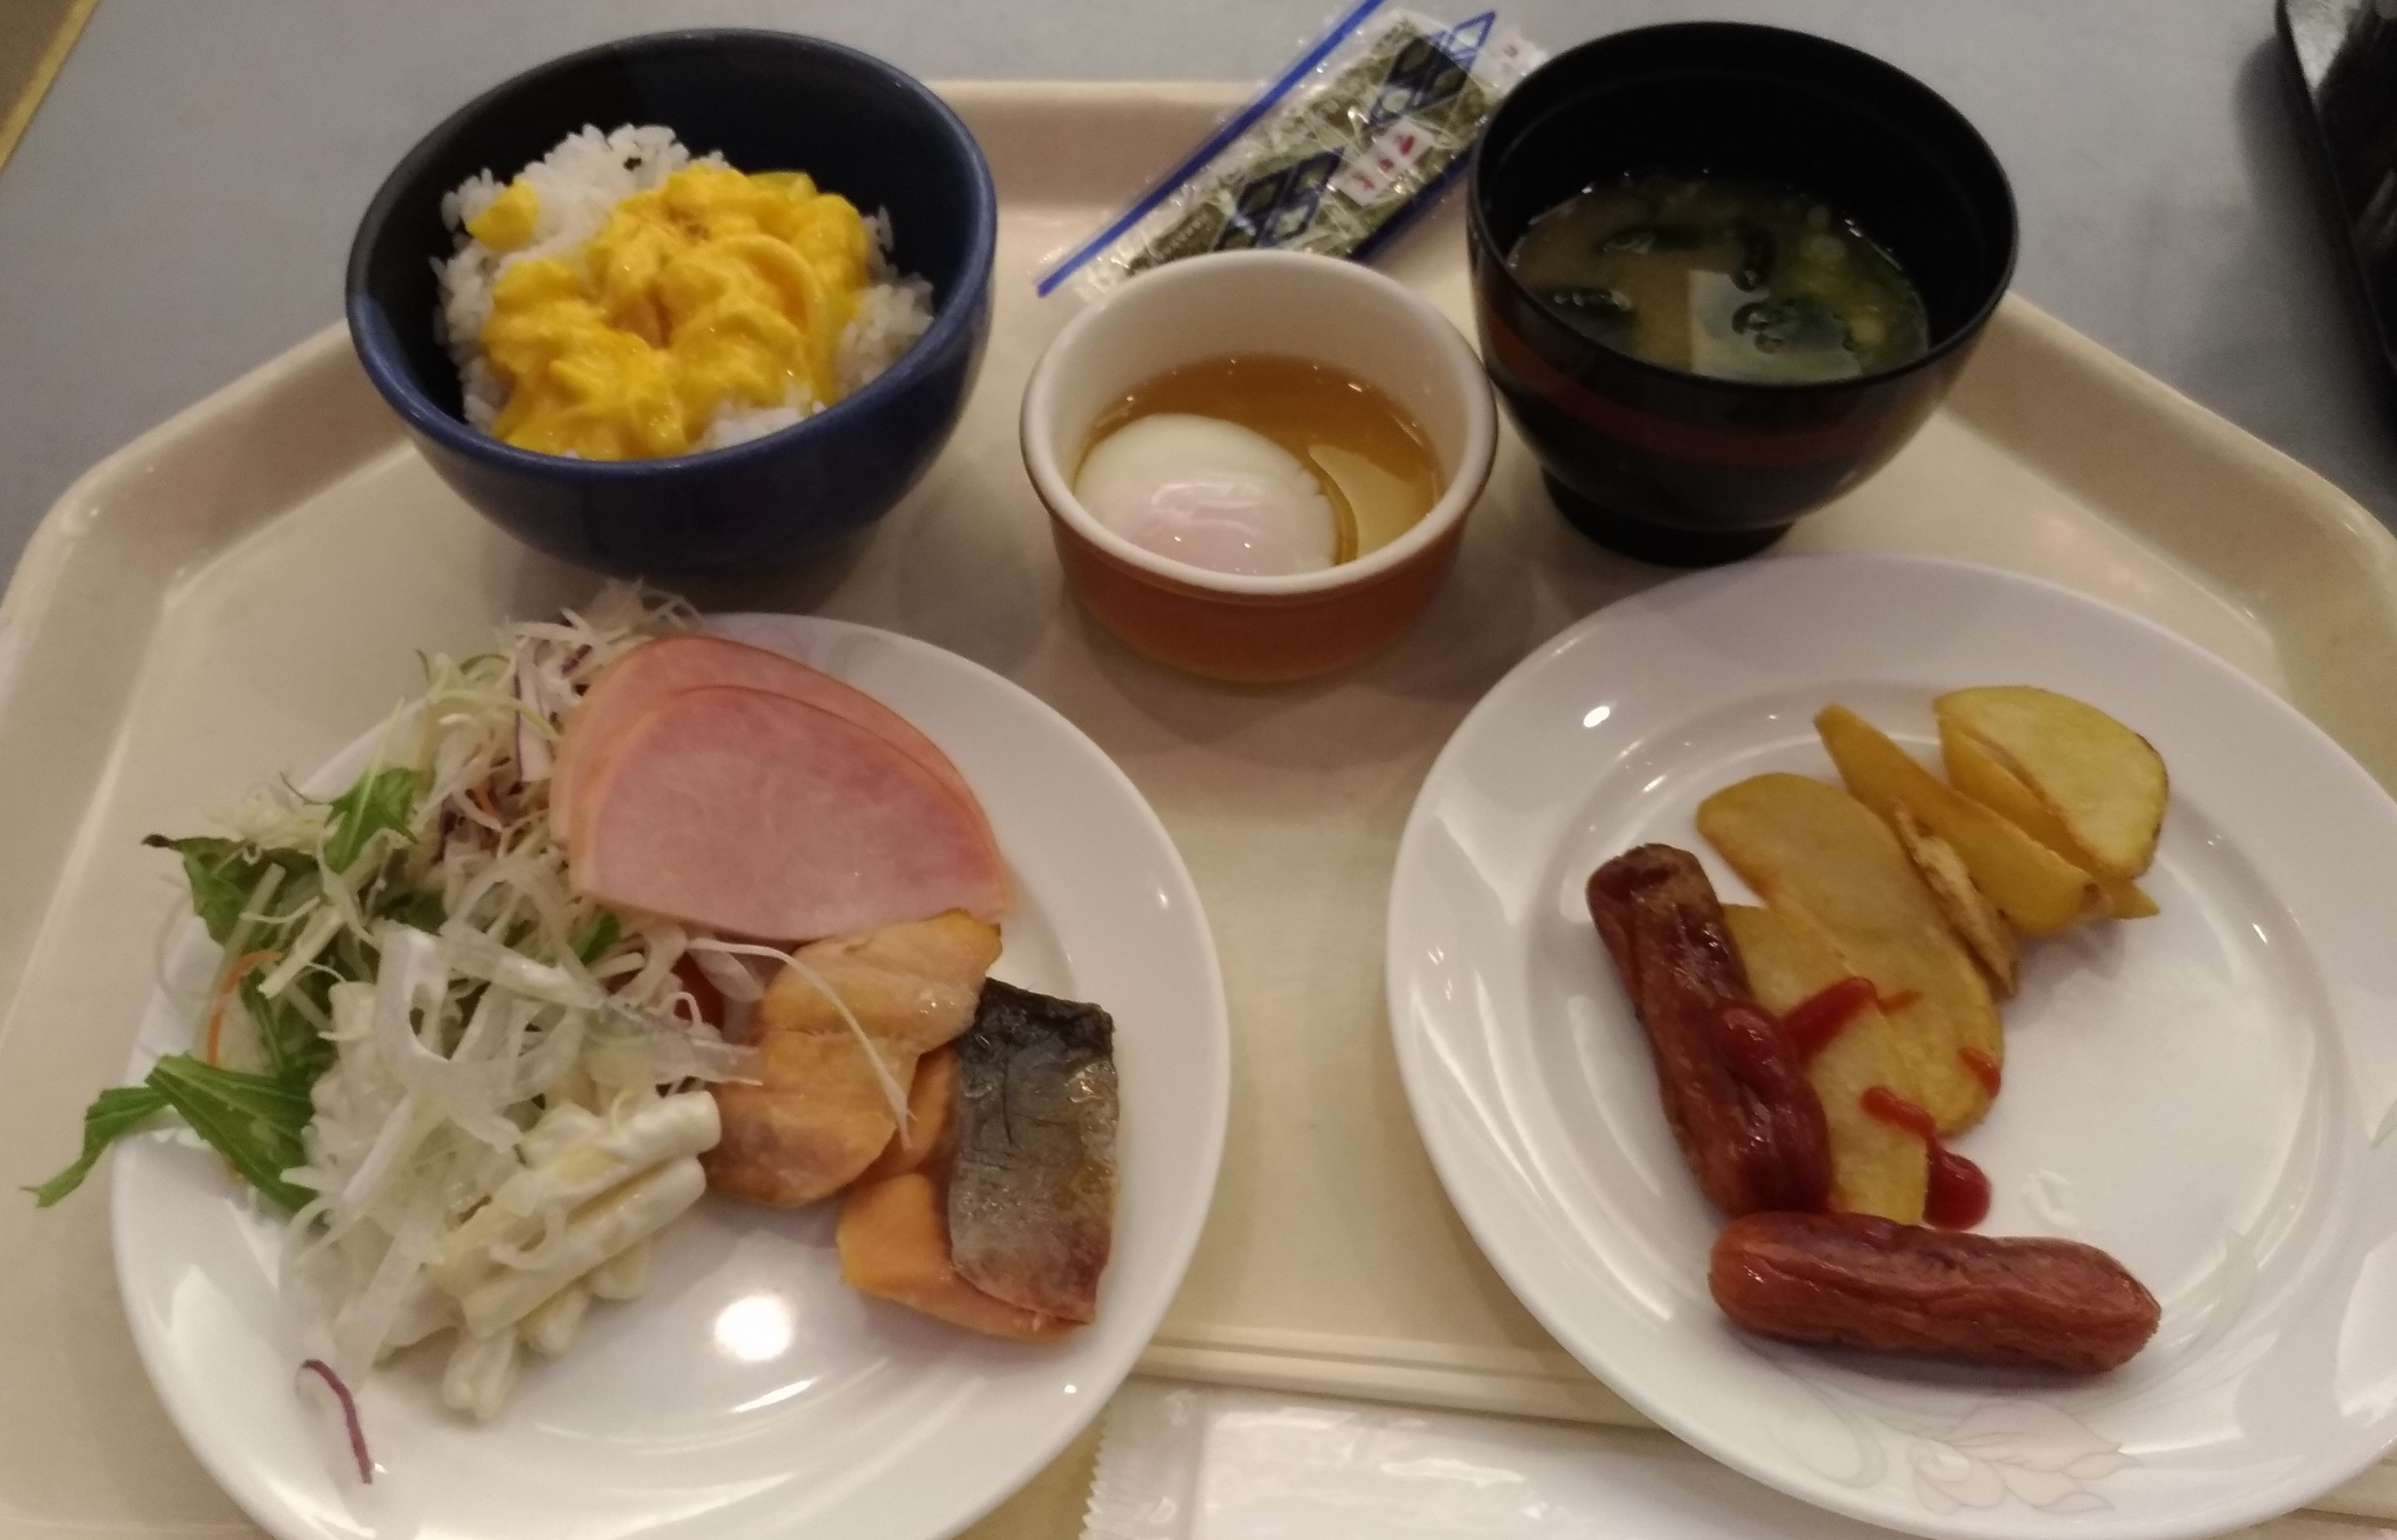 osaka_hotel_morning_buffet_ncb_1.jpg